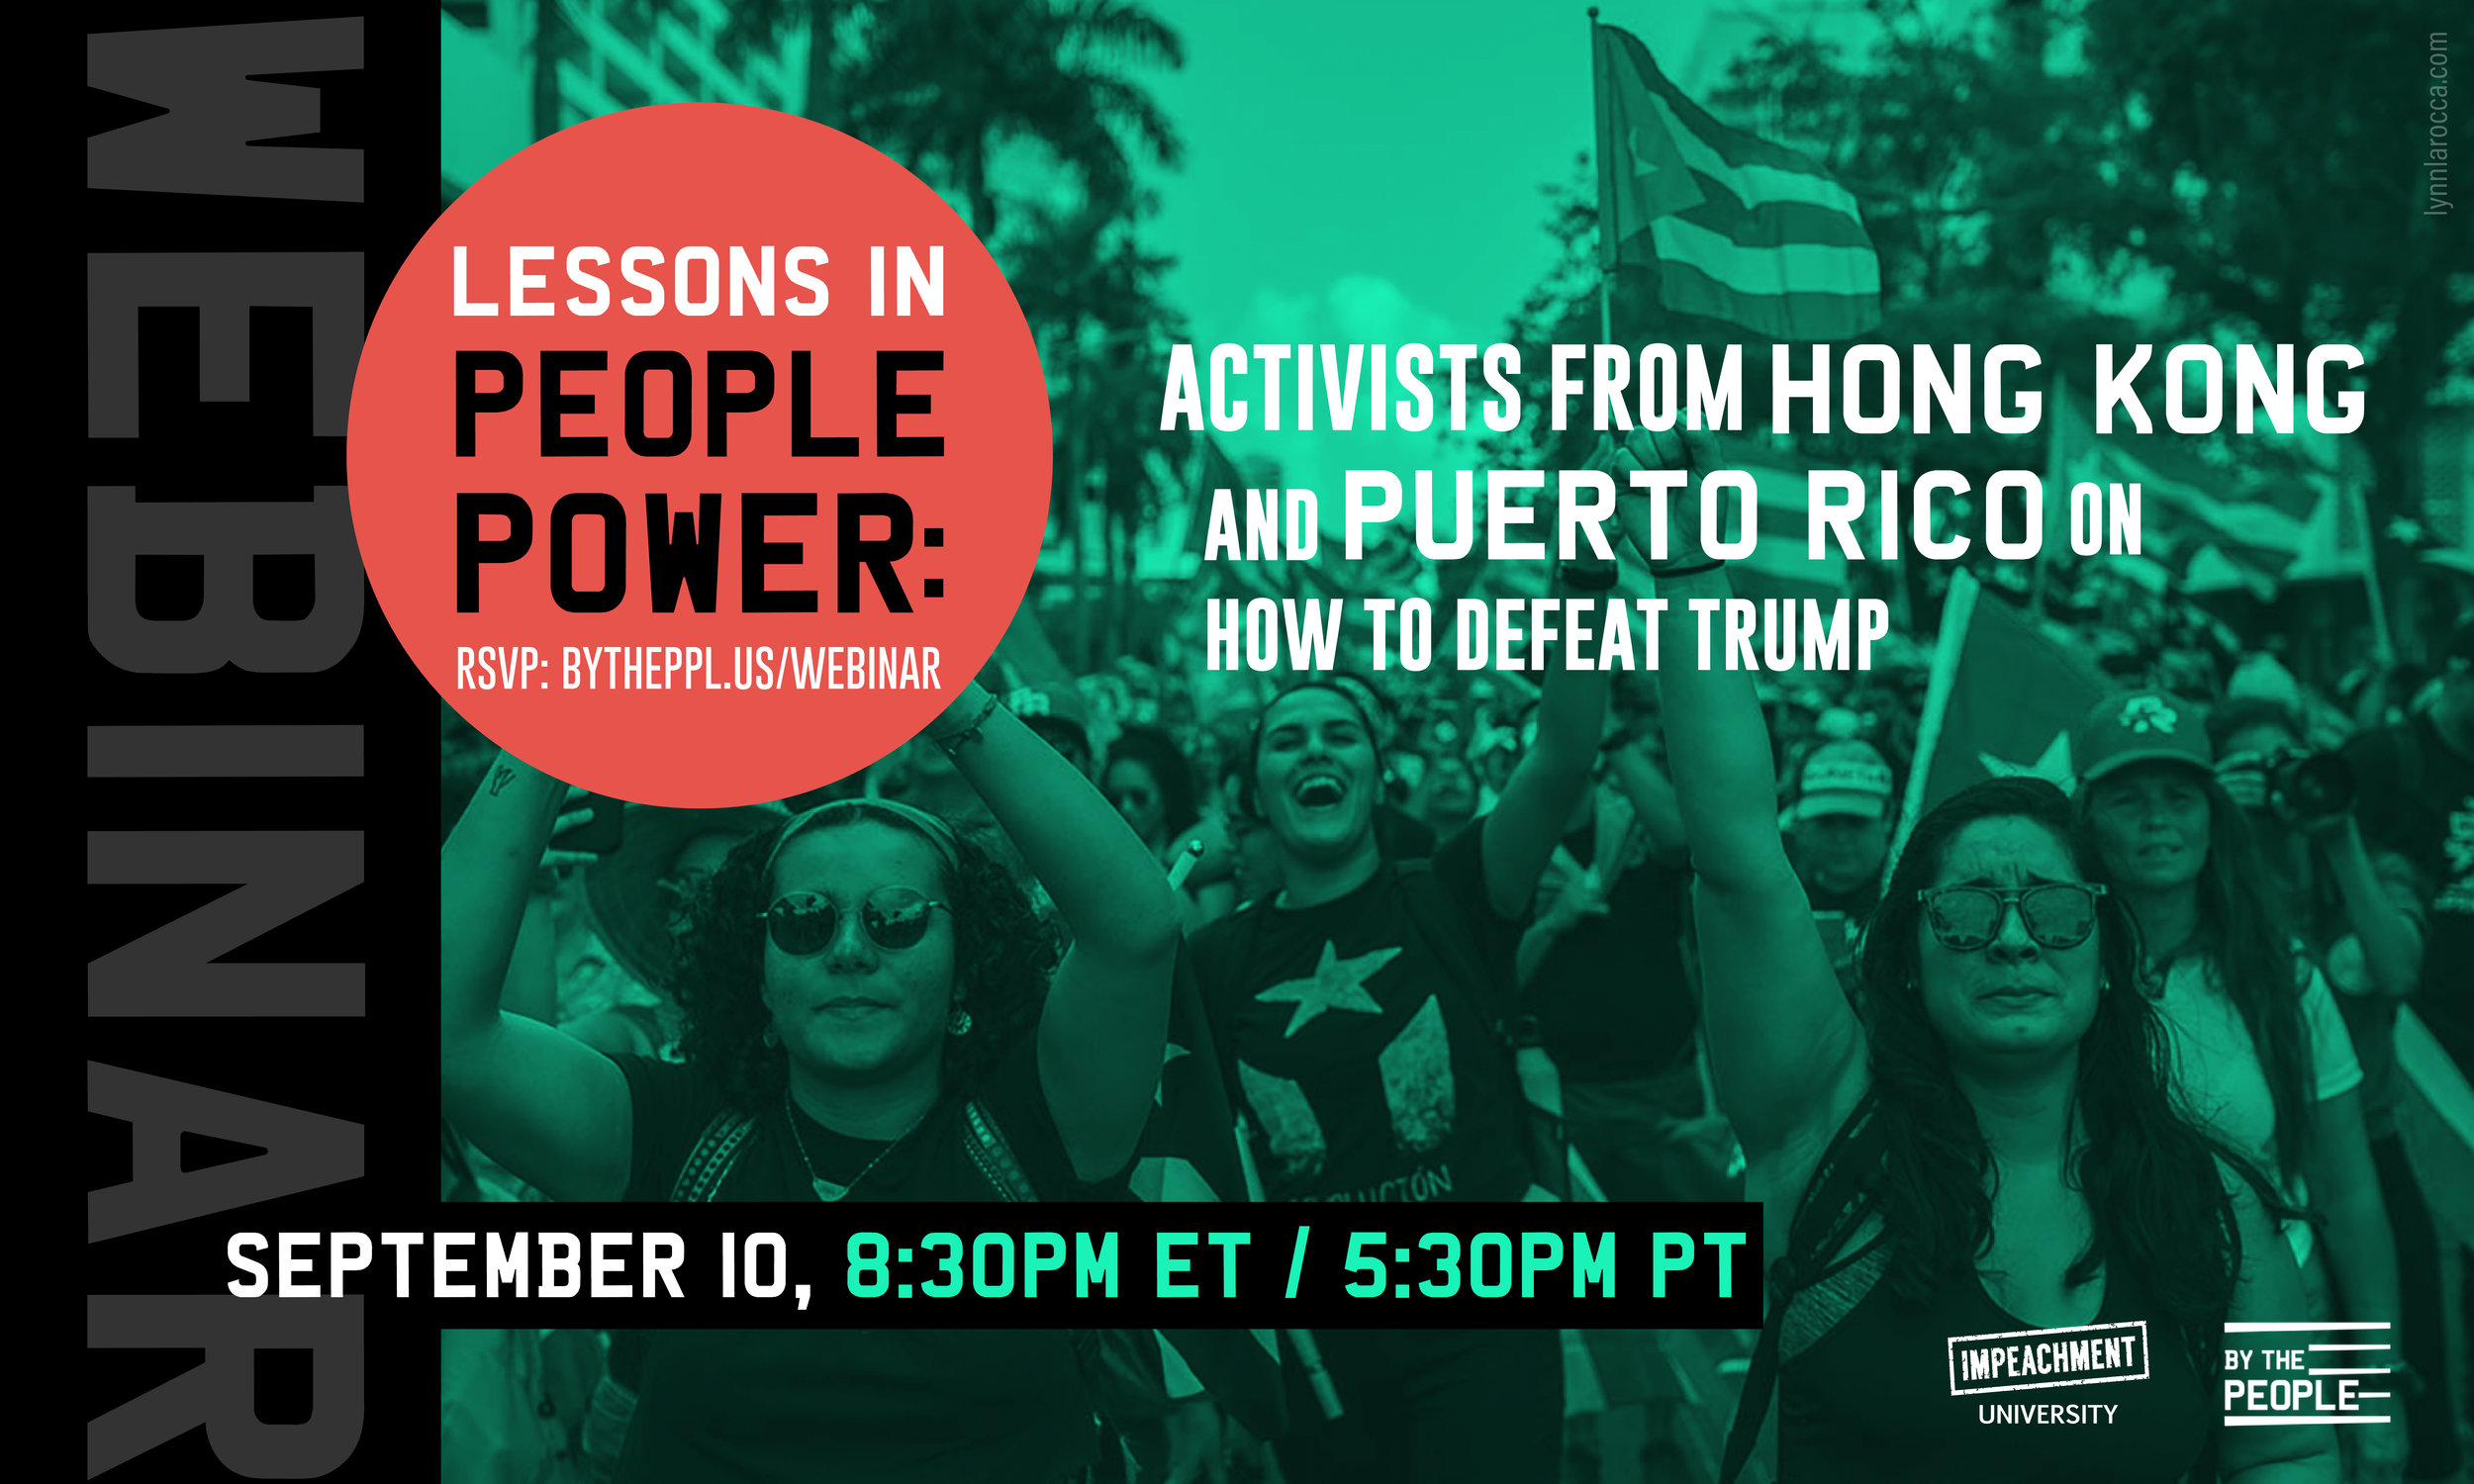 Lessons in People Power - Activists from Hong Kong and Puerto Rico on How to Defeat Trump